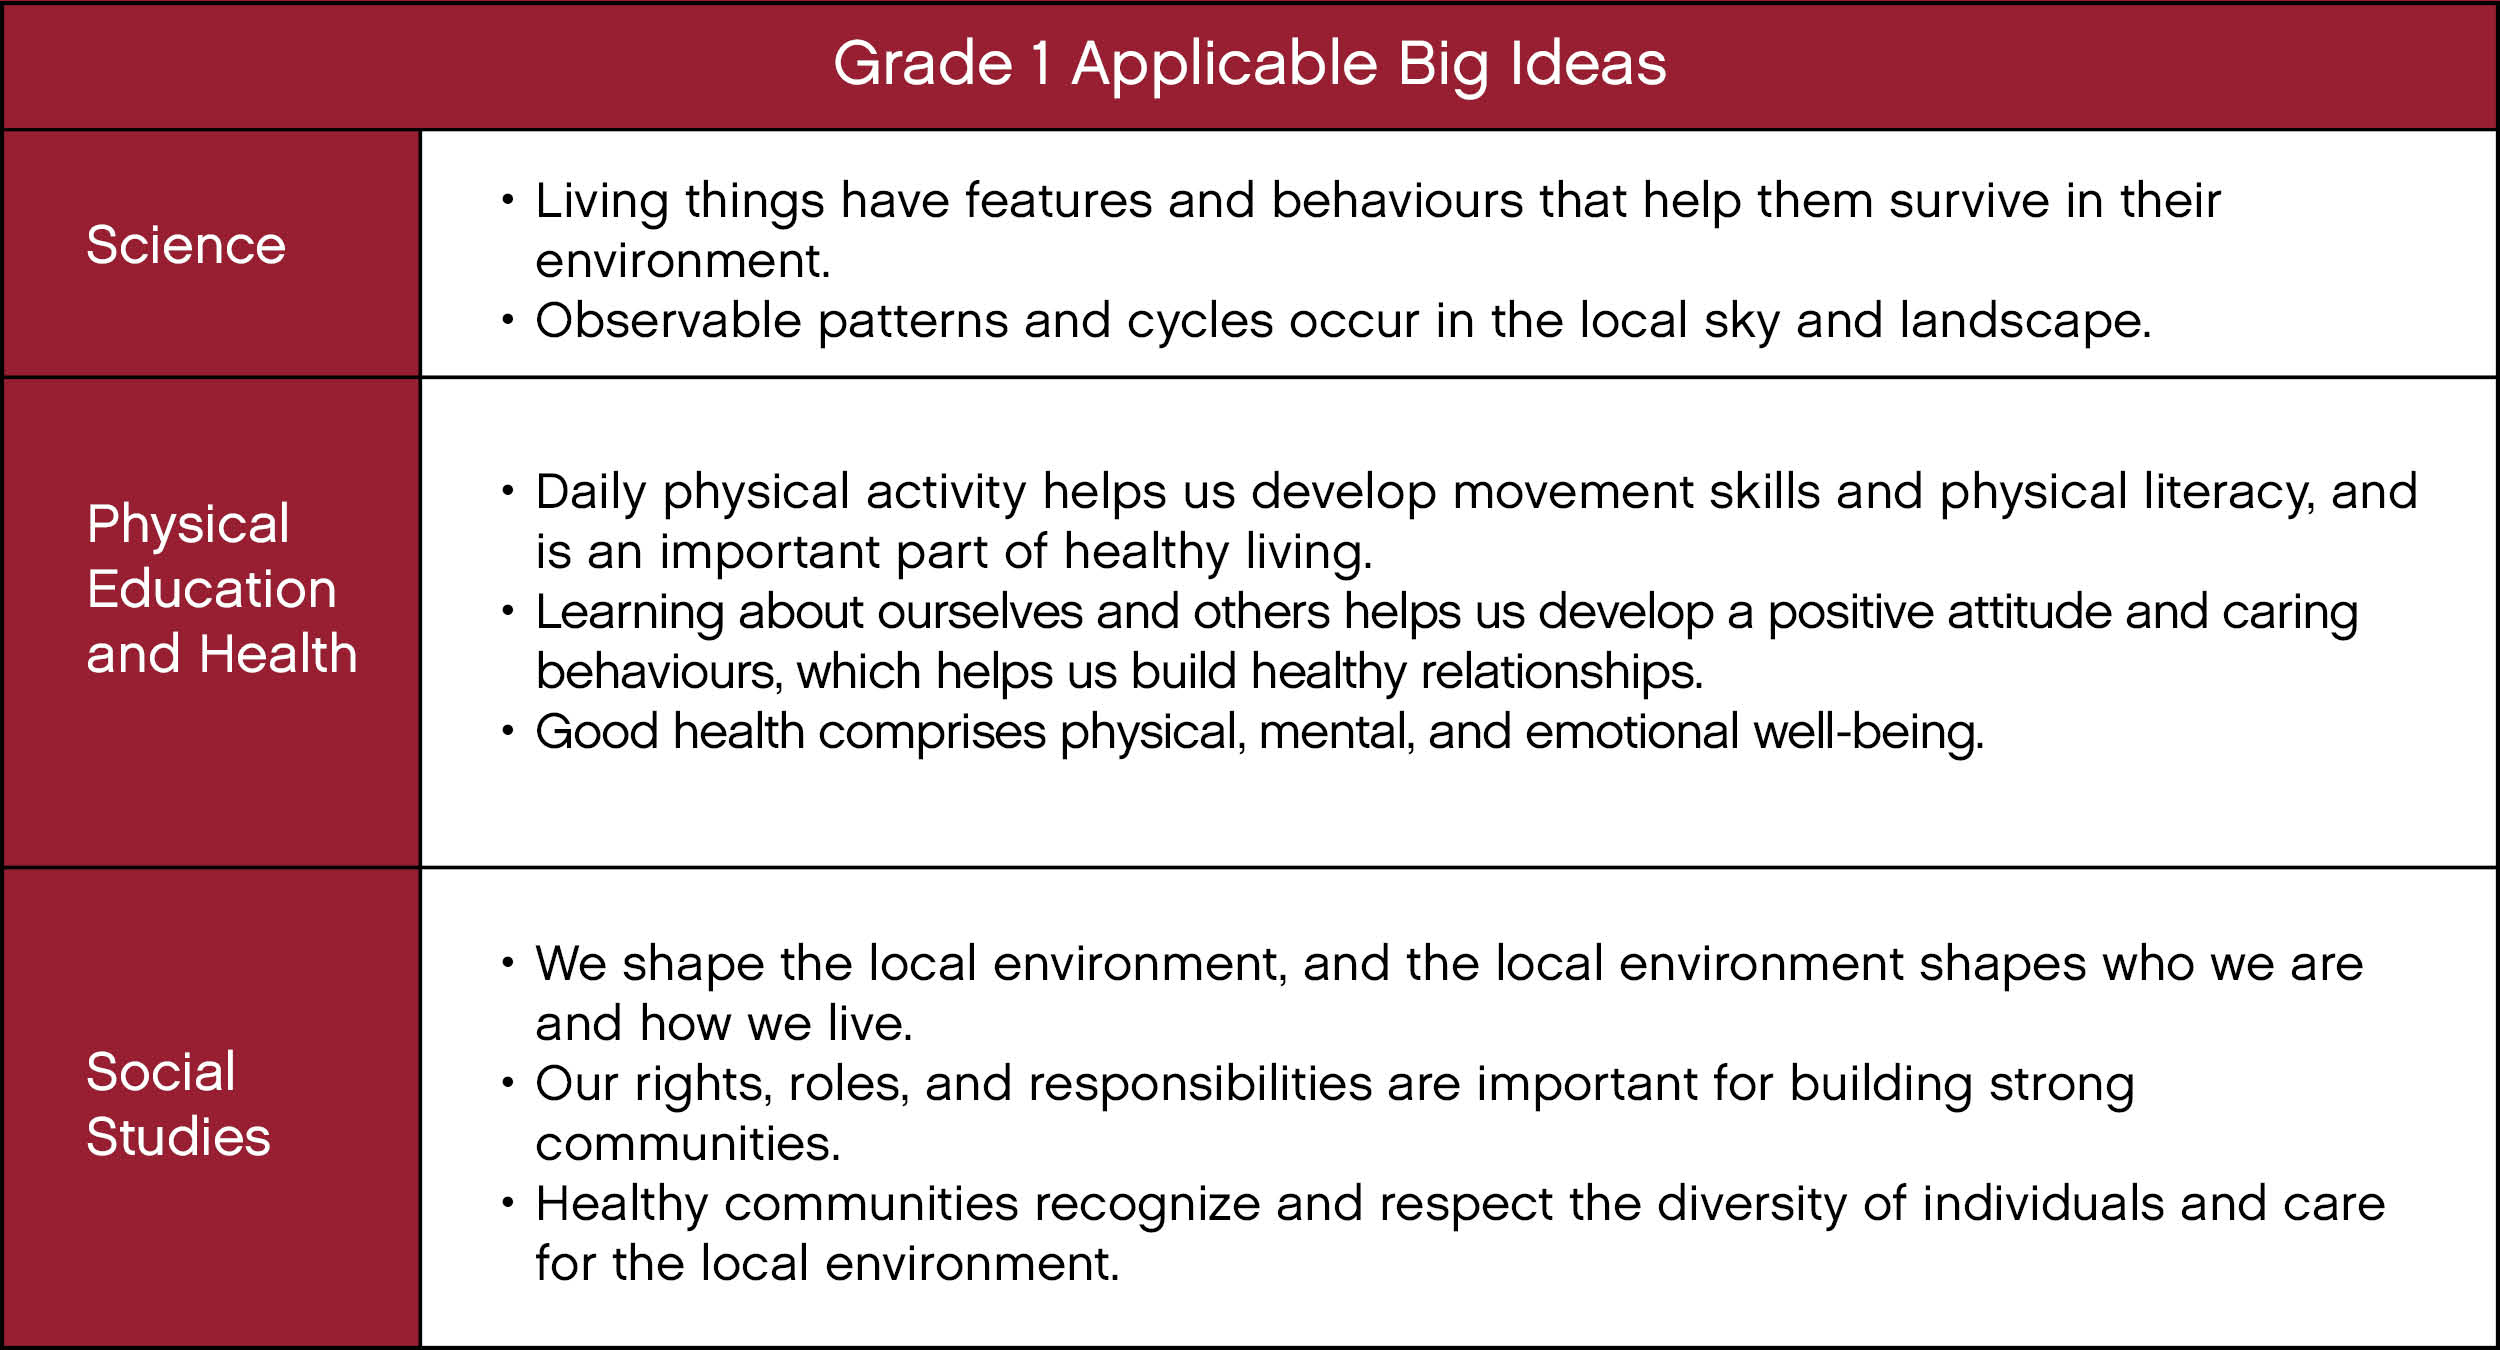 grade 1 big ideas